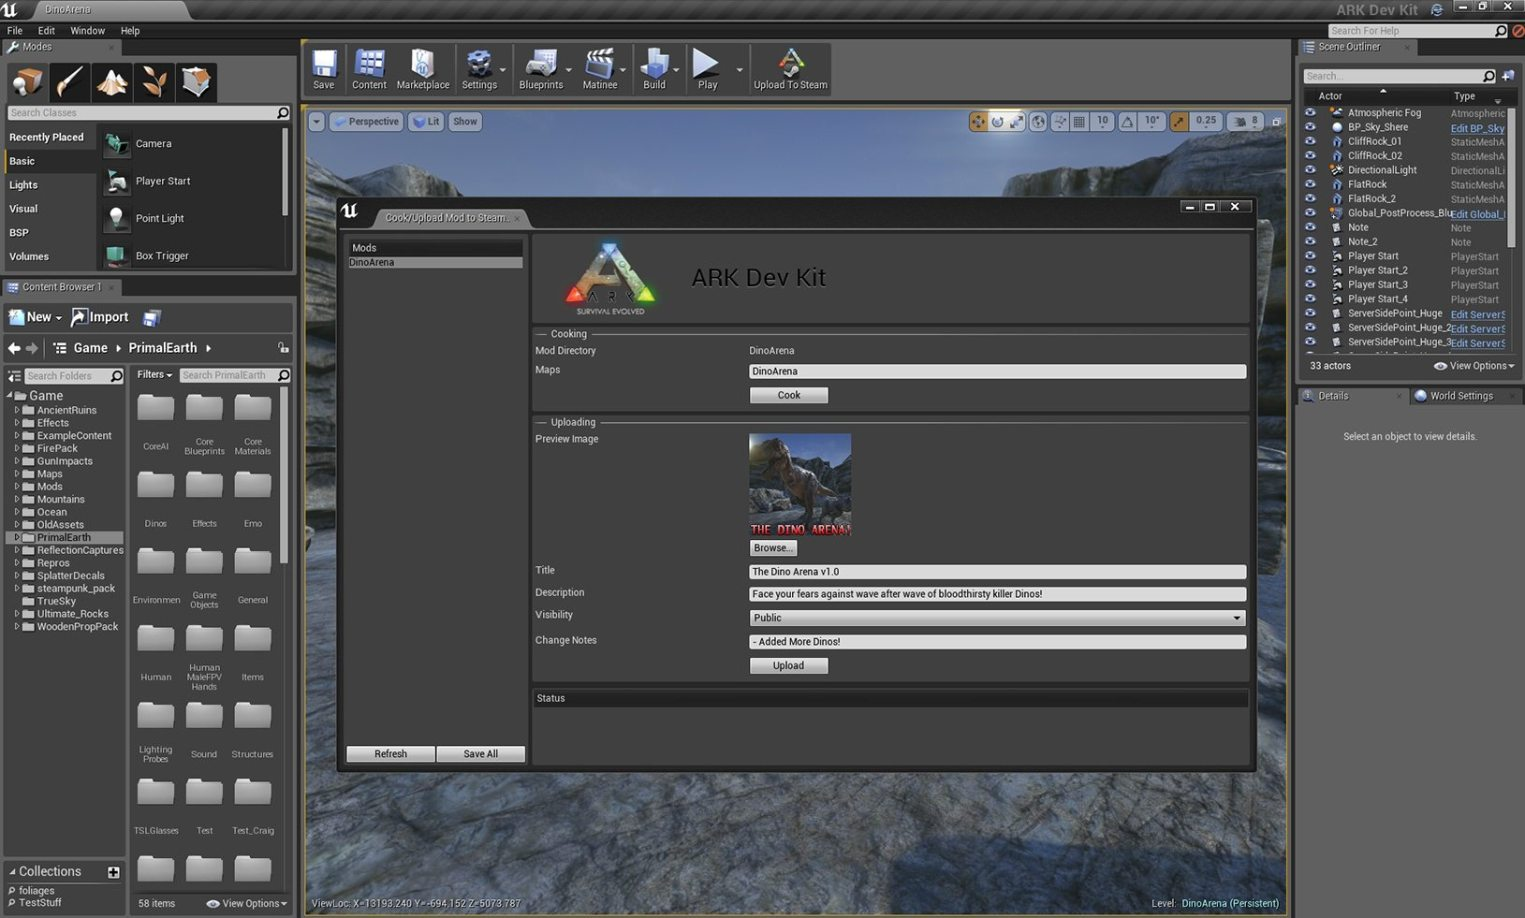 ARK: Survival Evolved Now Open to Unreal Engine 4 Modding - Gaming